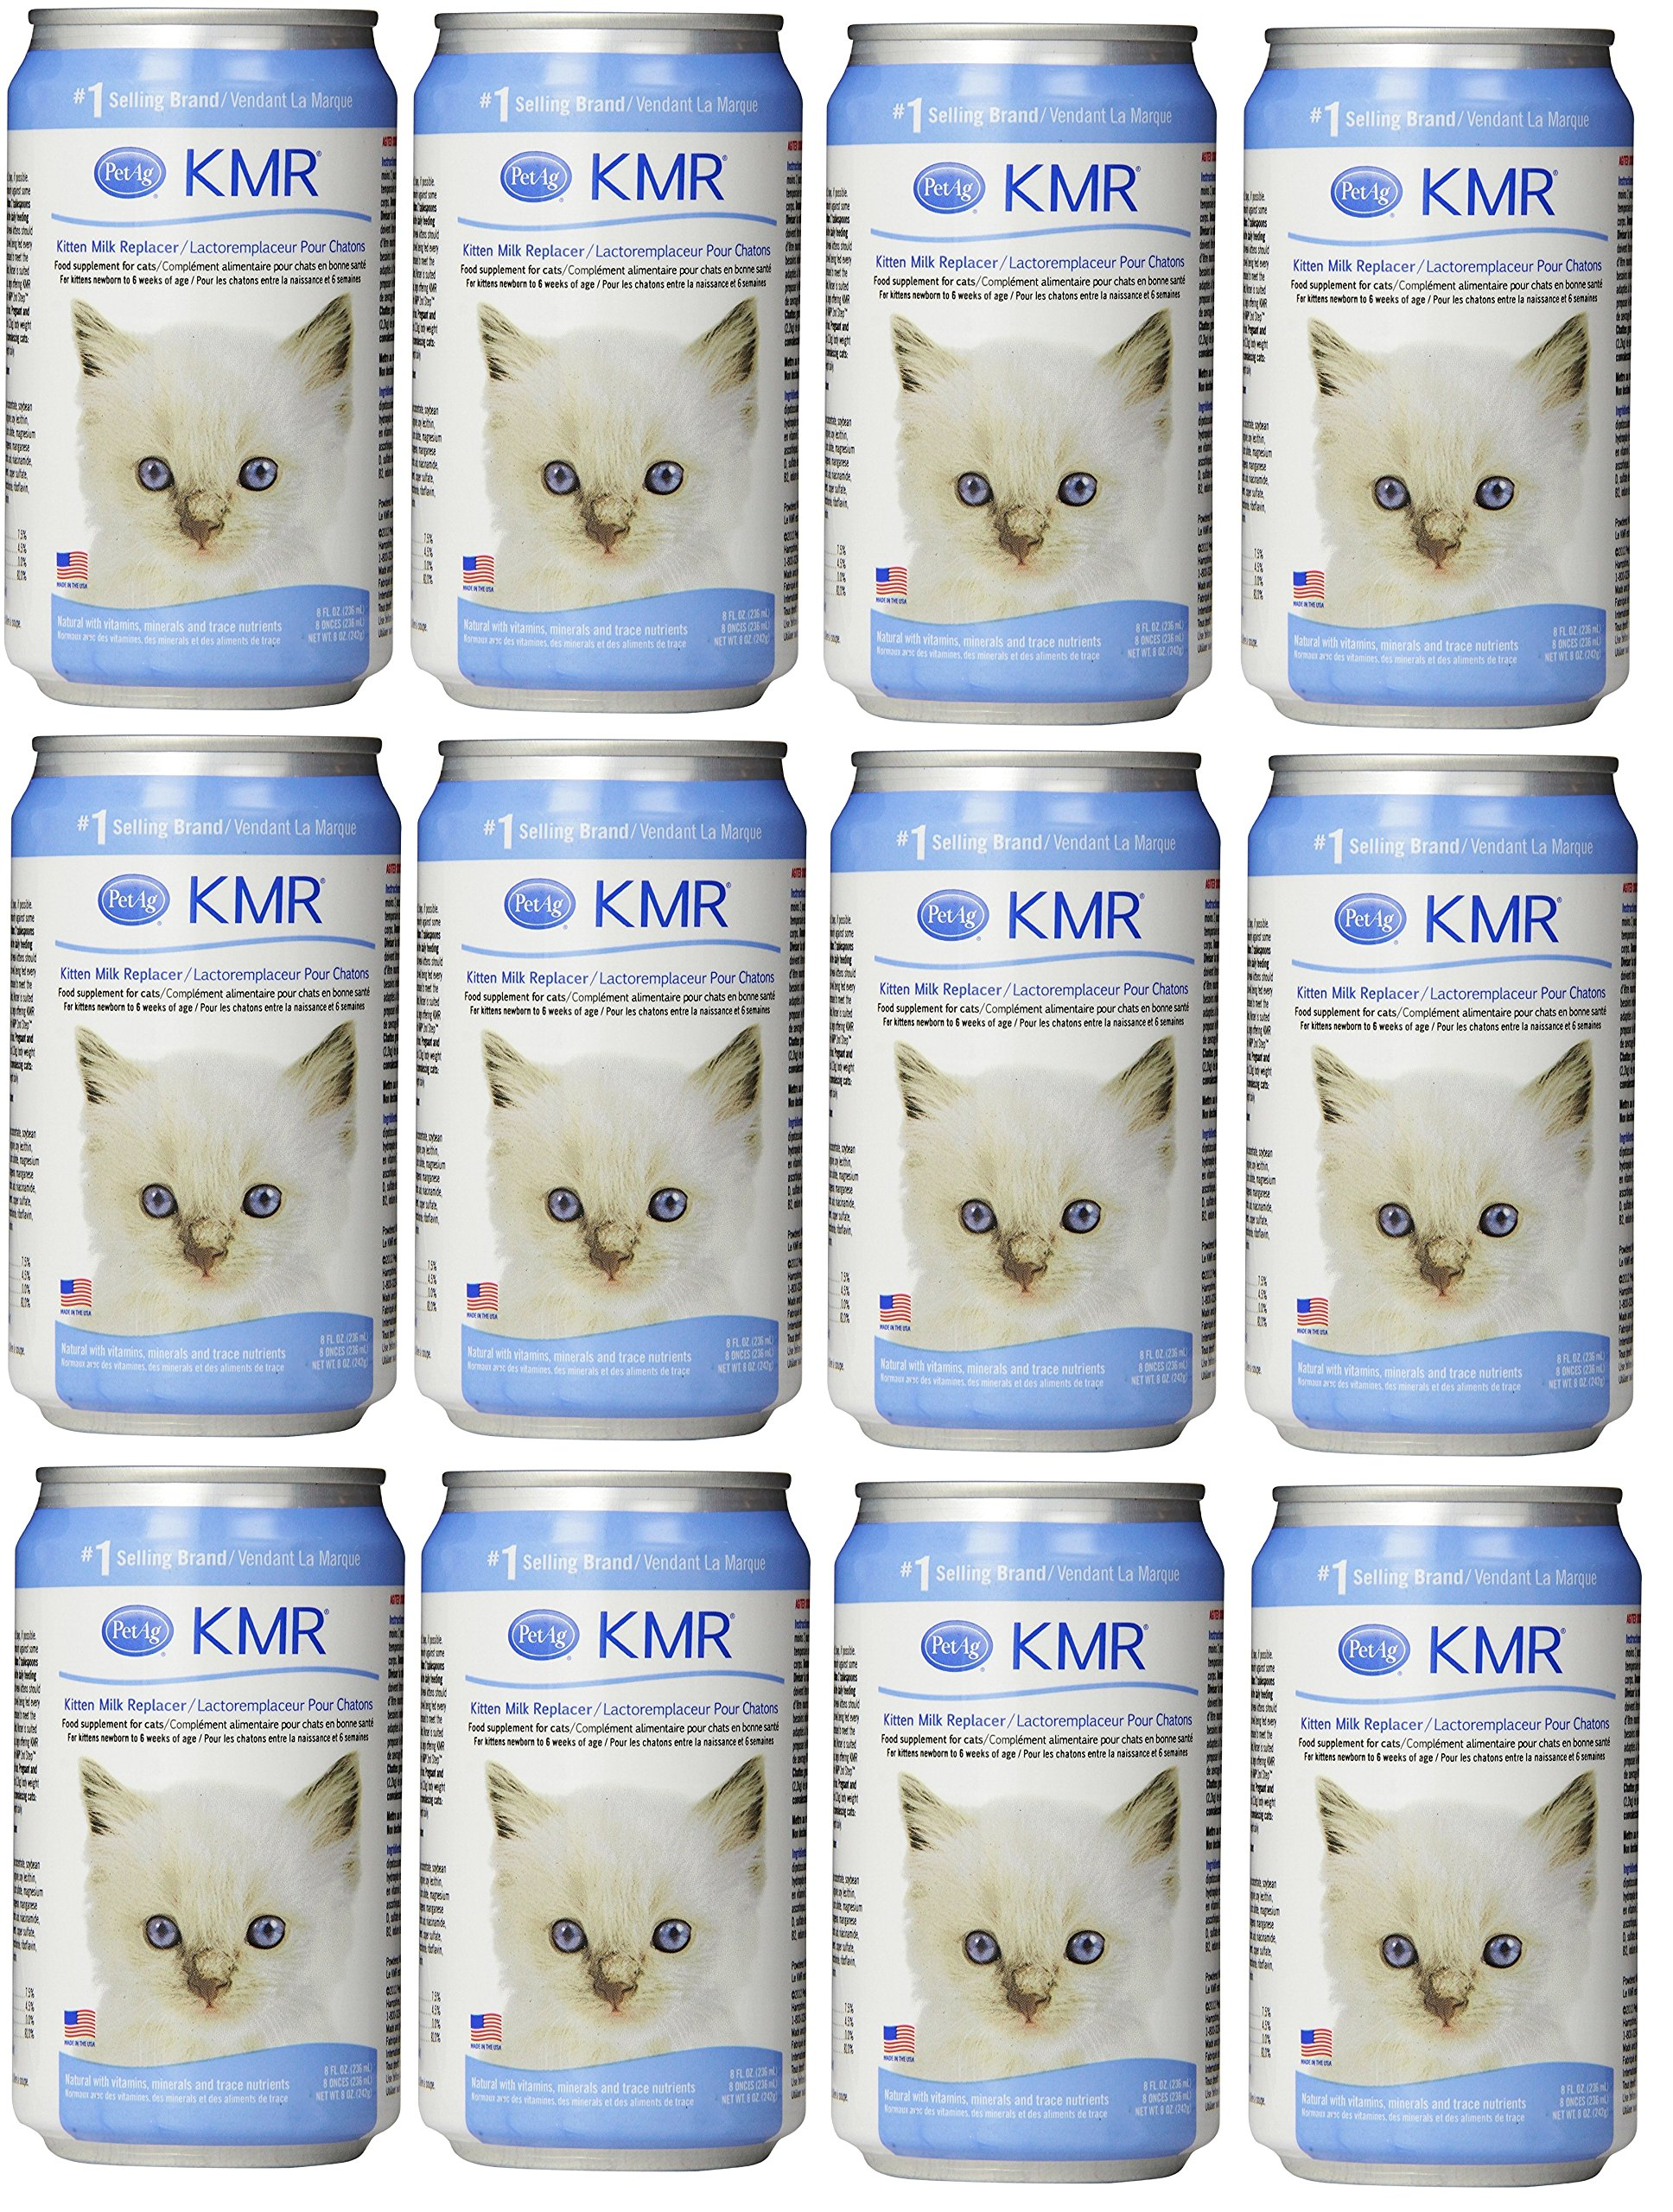 (12 Pack) KMR Milk Replacer Liquid for Kittens Size 8 Ounce by KMR